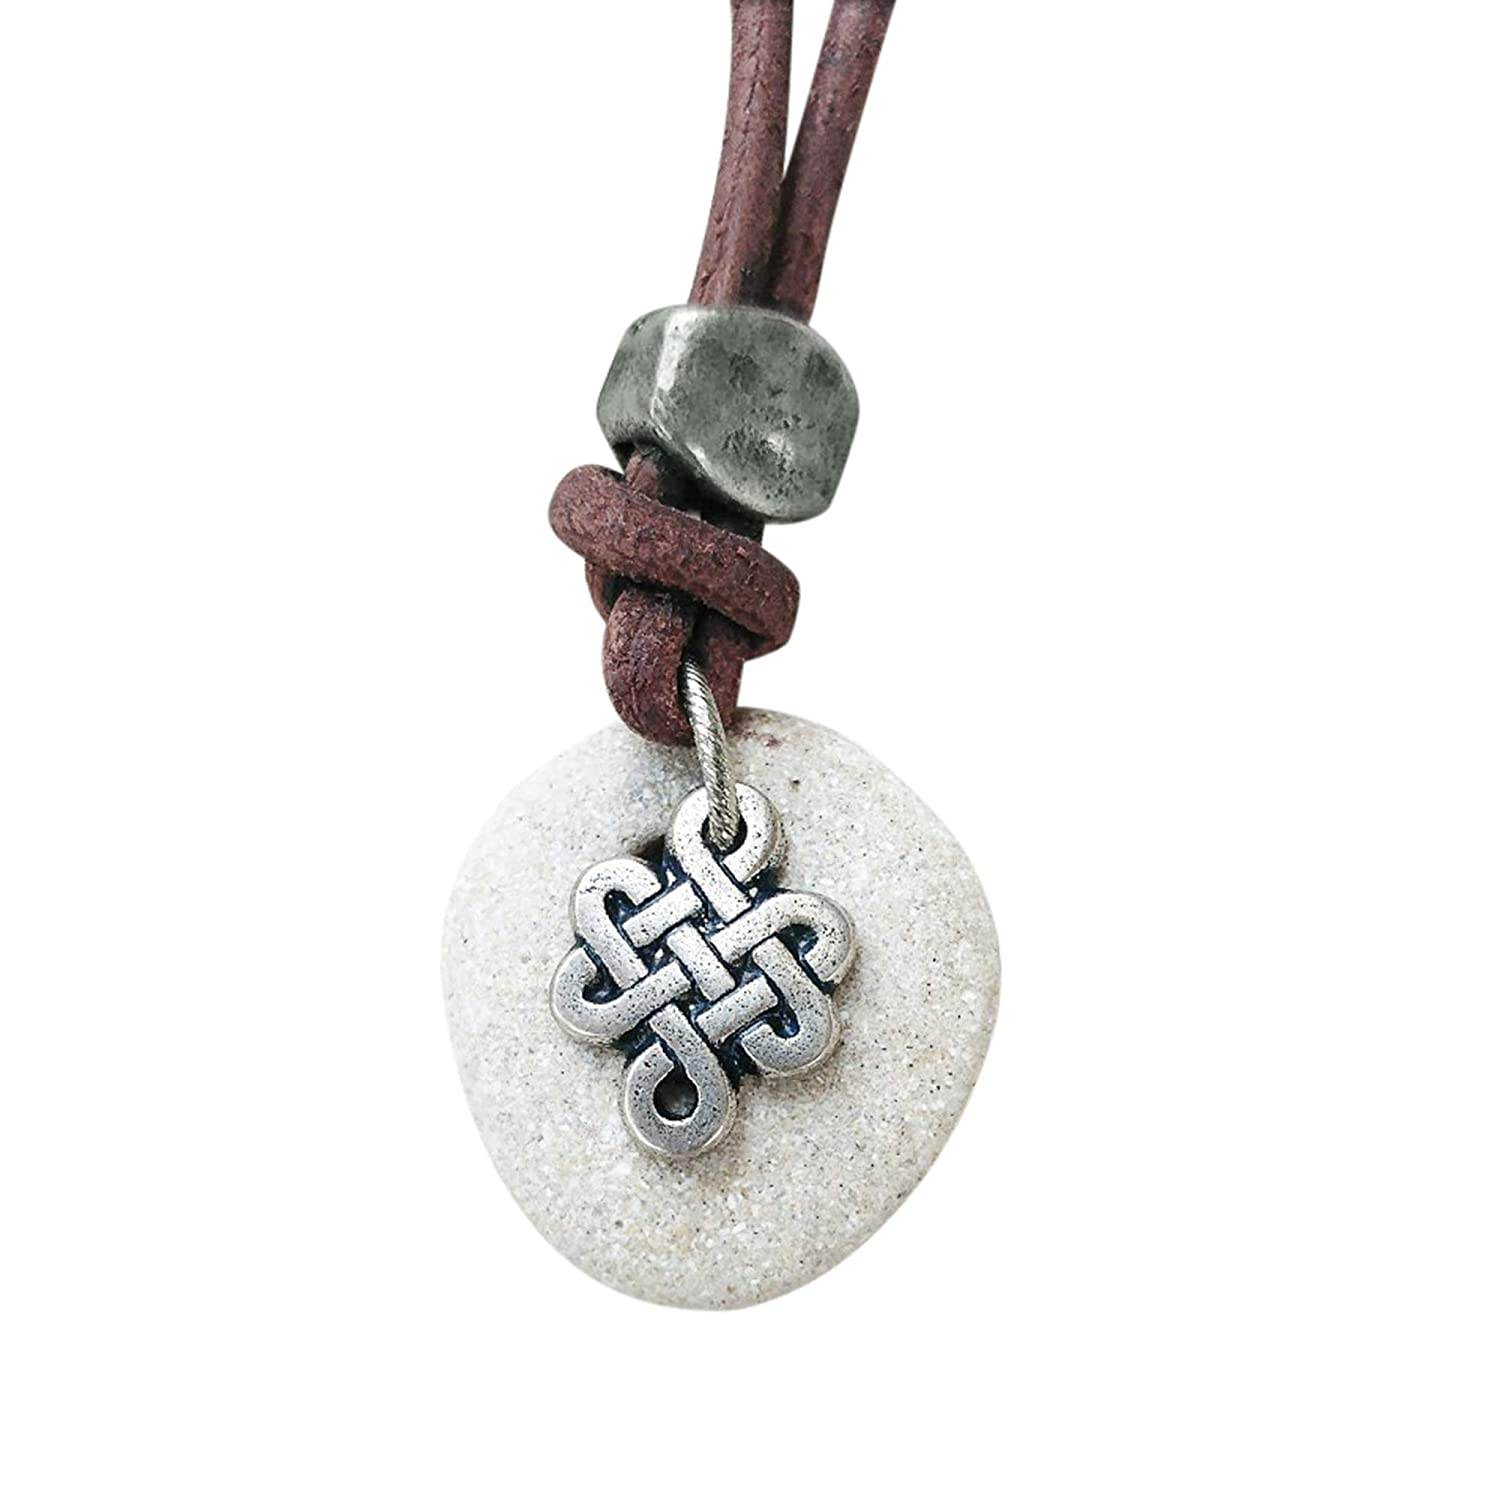 Amazon Com Natural Healing Hag Stone Necklace For Men And Women With Celtic Knot Spiritual Jewelry Handmade 37min | short, mystery | 2017 (usa). natural healing hag stone necklace for men and women with celtic knot spiritual jewelry